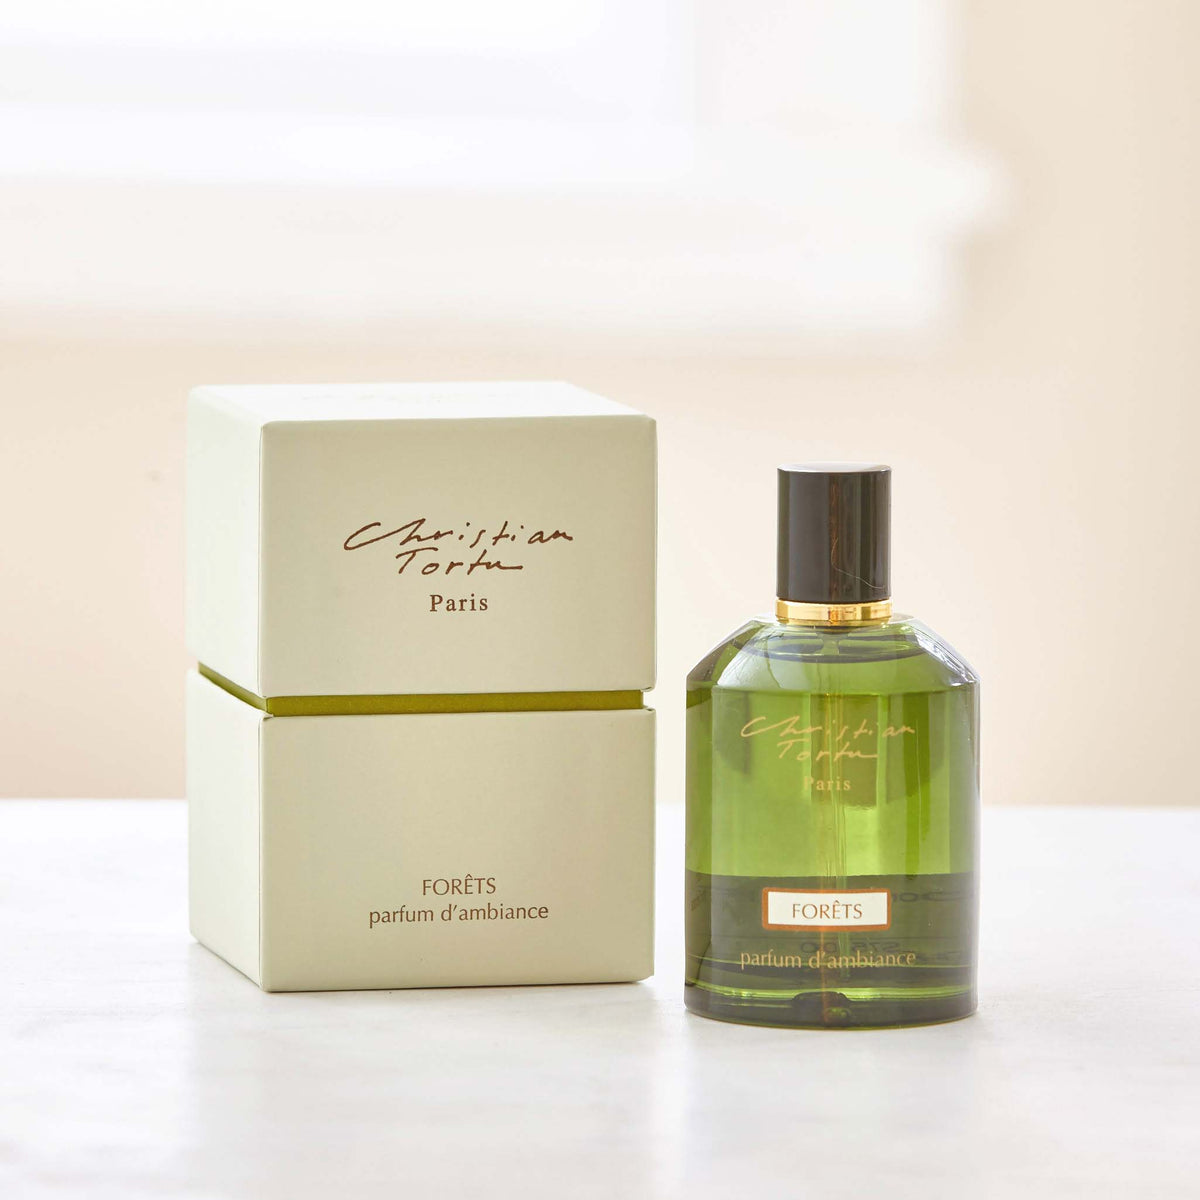 CHRISTIAN TORTU FORETS HOME FRAGRANCE COLLECTION